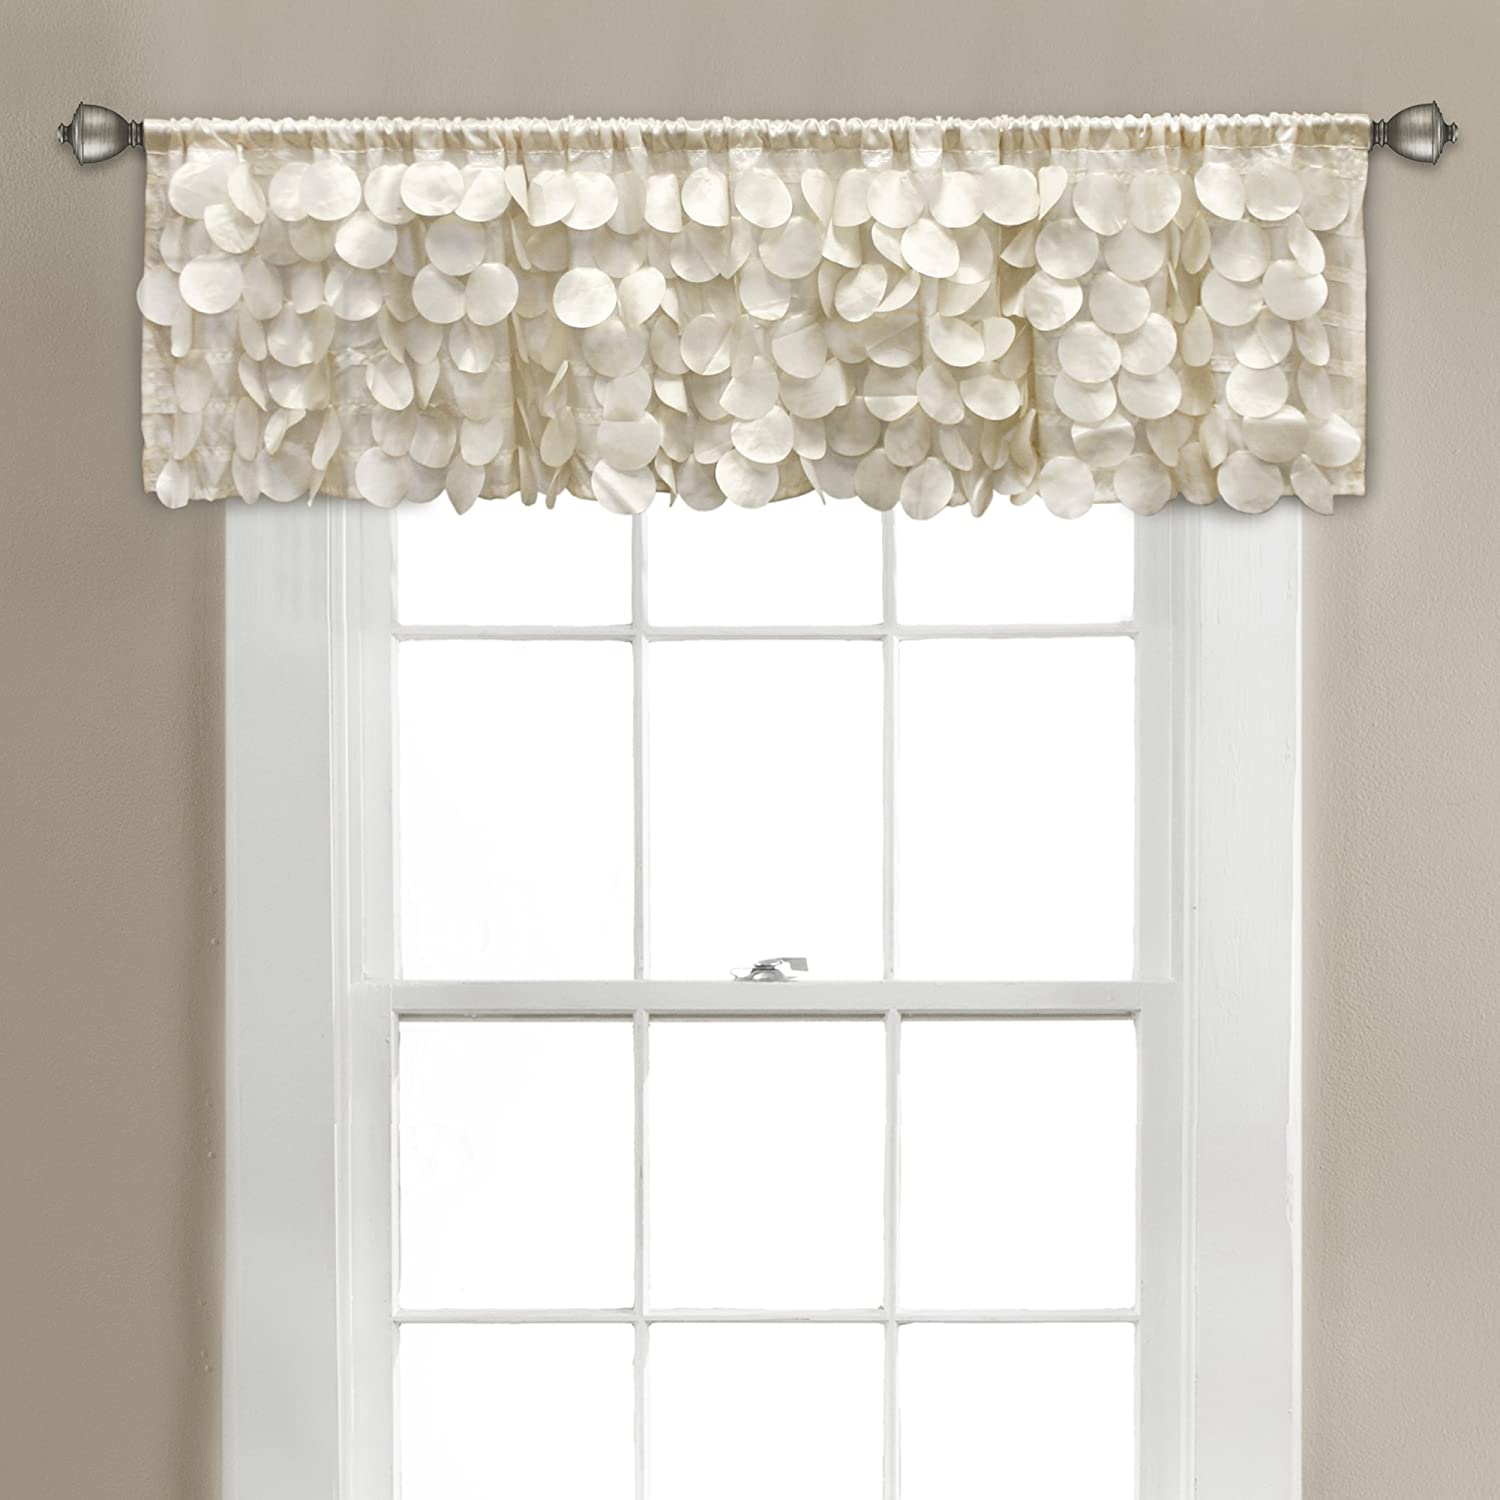 treatment amazing drapes and with shades valance style planning window western attached curtains valances decorating shop drapery themed treatments